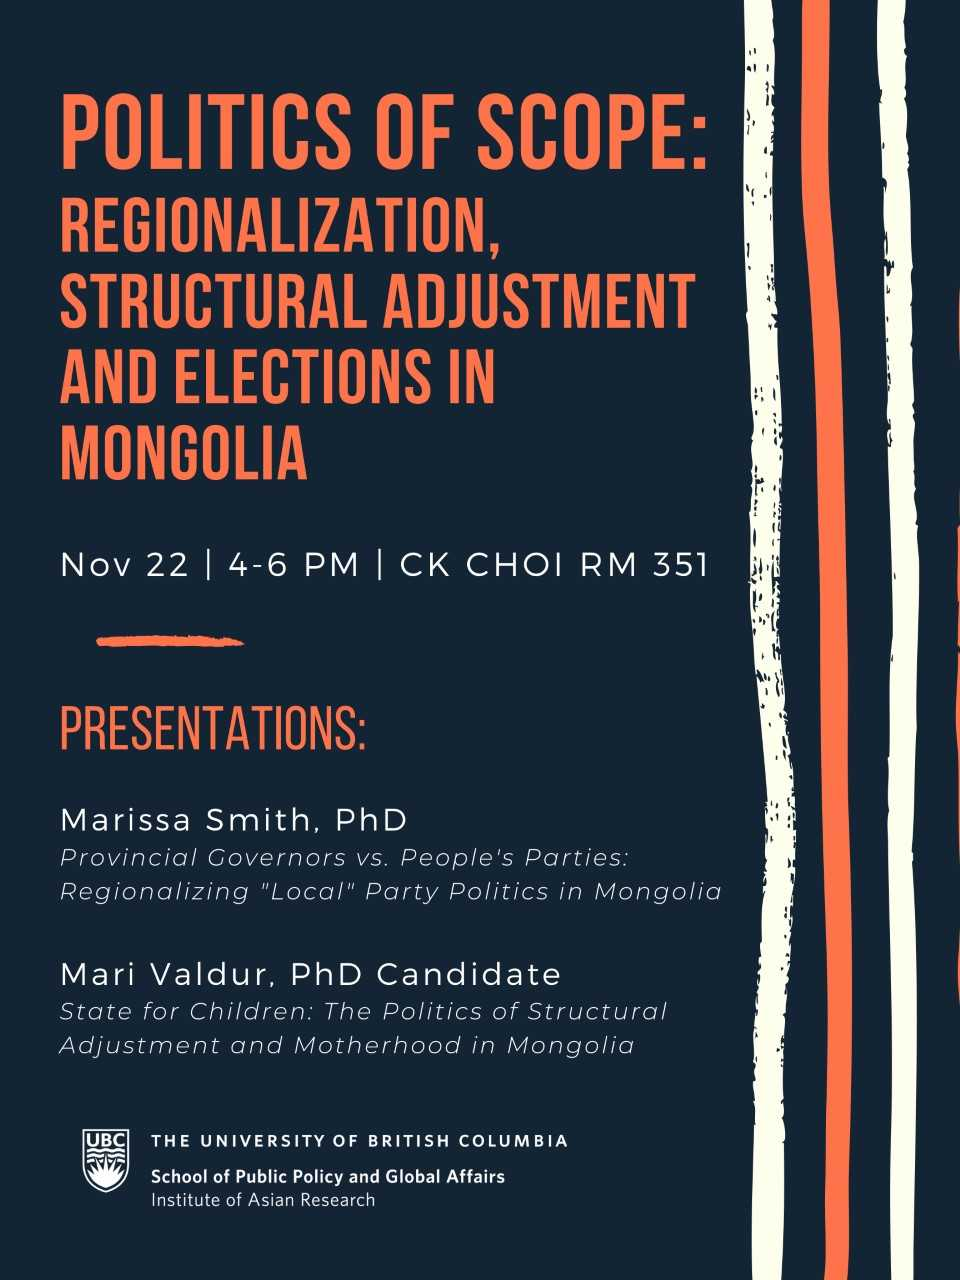 the Institute of Asian Research at the University of British Columbia:  Politics of Scope: Regionalization, Structural Adjustment and Elections in Mongolia